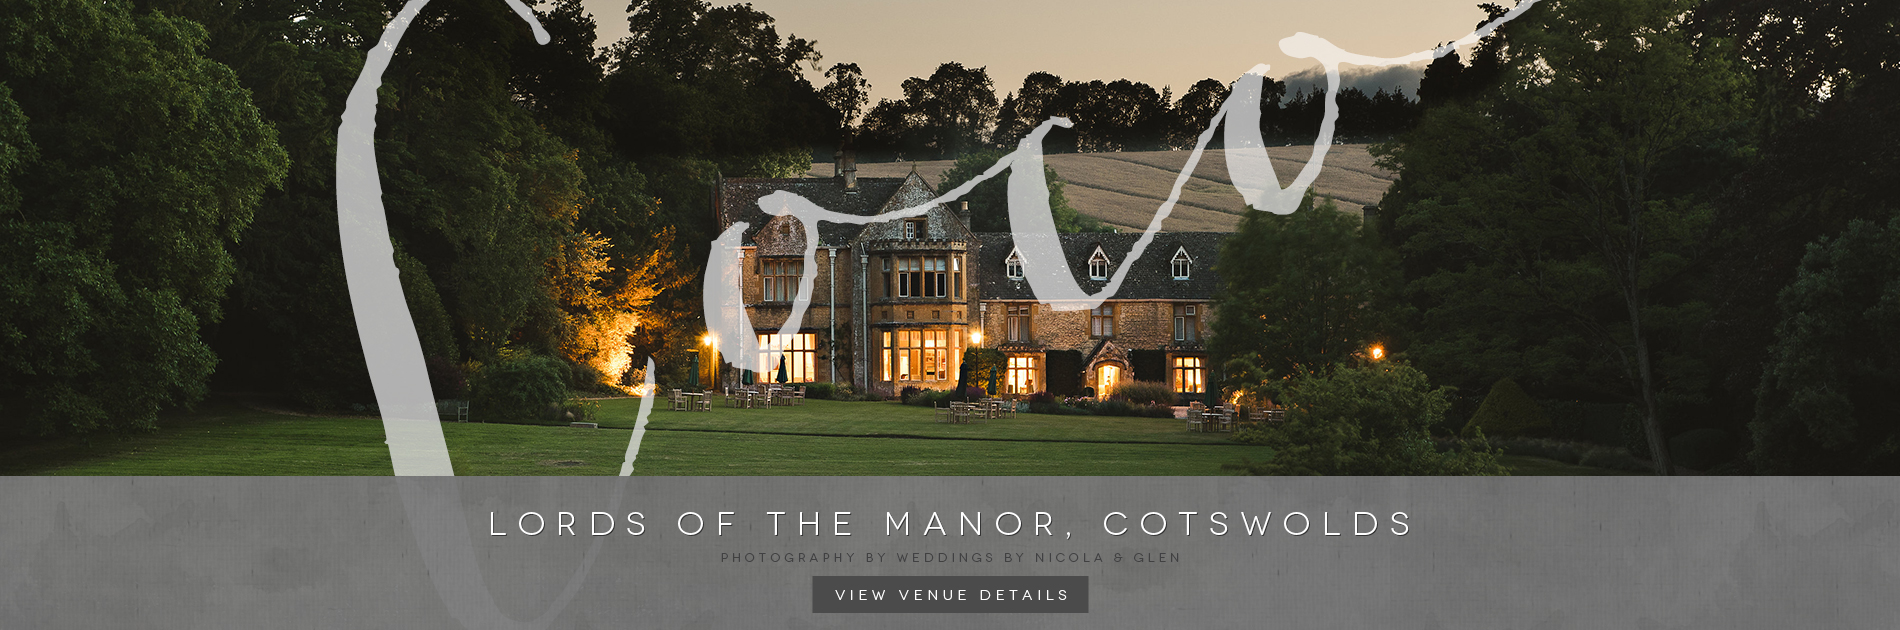 Coco wedding venues slideshow - country-house-wedding-venues-in-cotswolds-lords-of-the-manor-january-2016